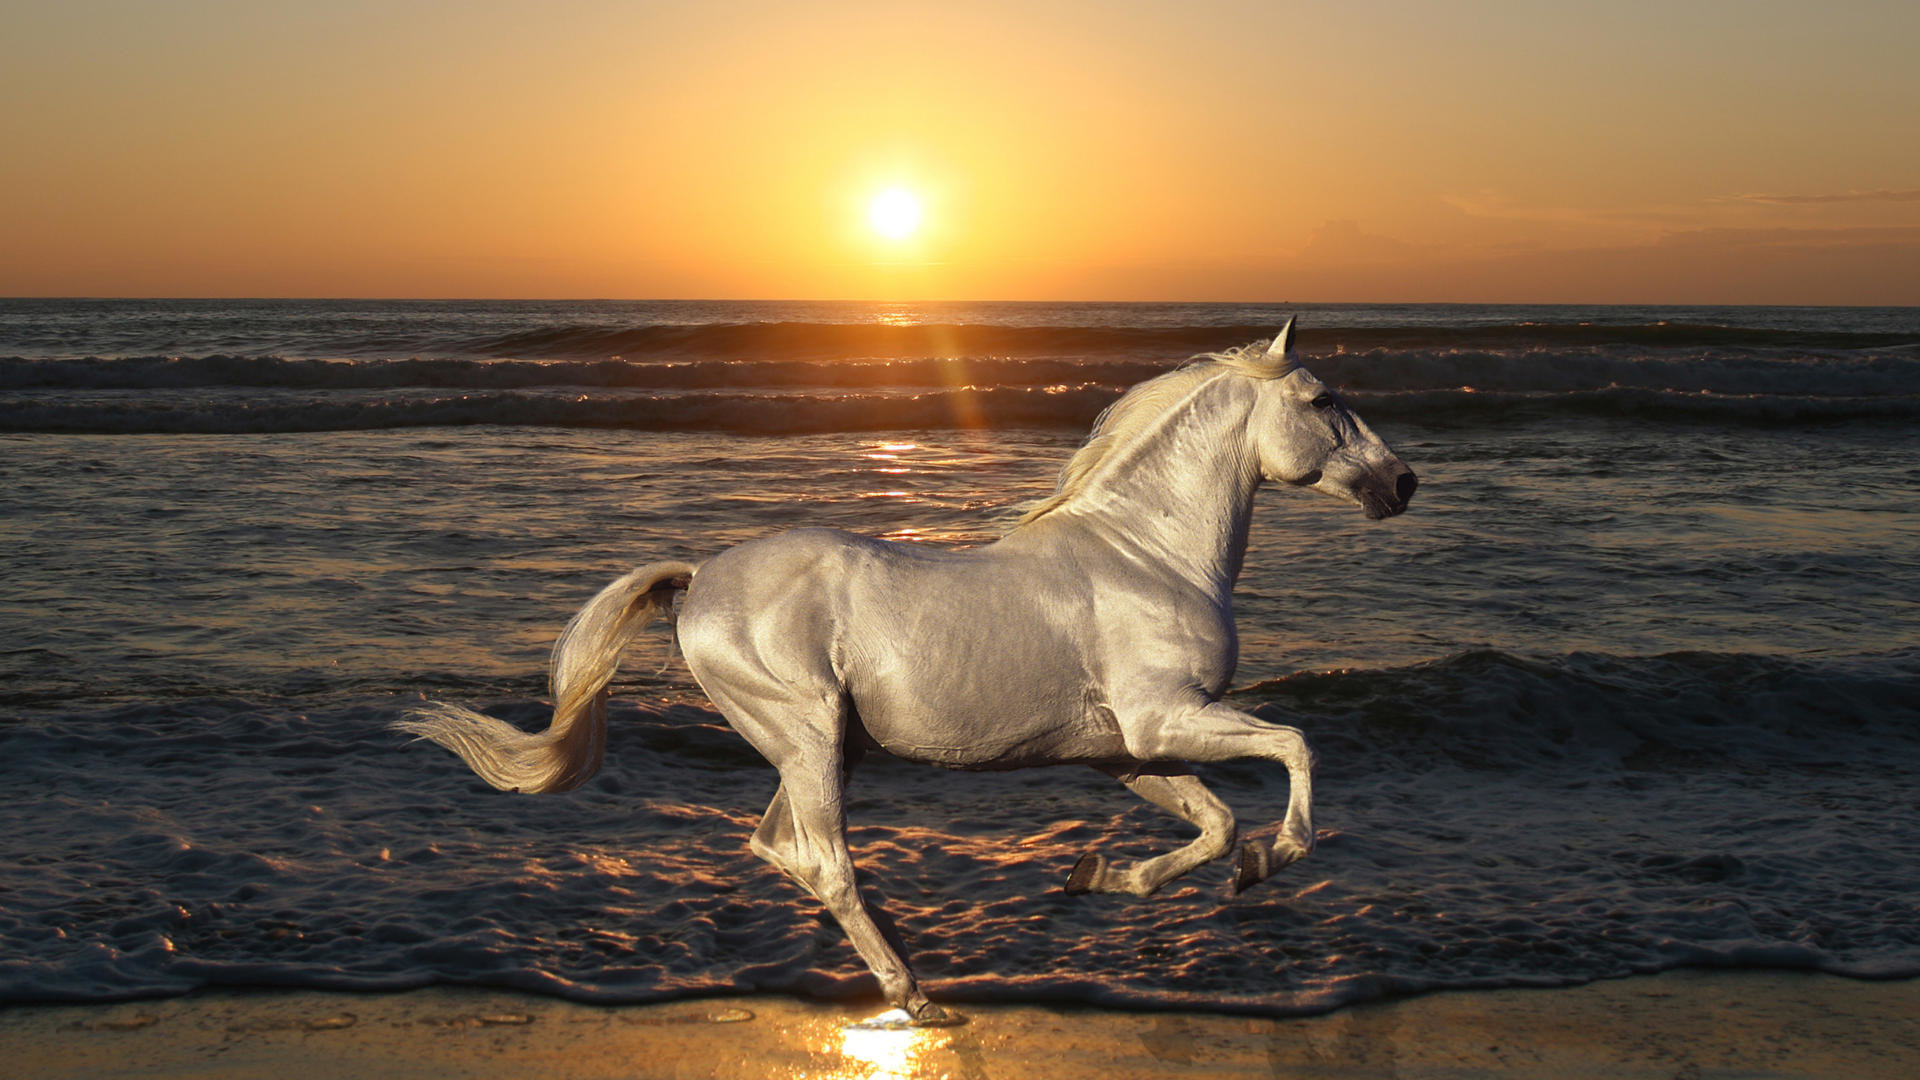 Free download Horse wallpaper ID:23637 full hd for PC